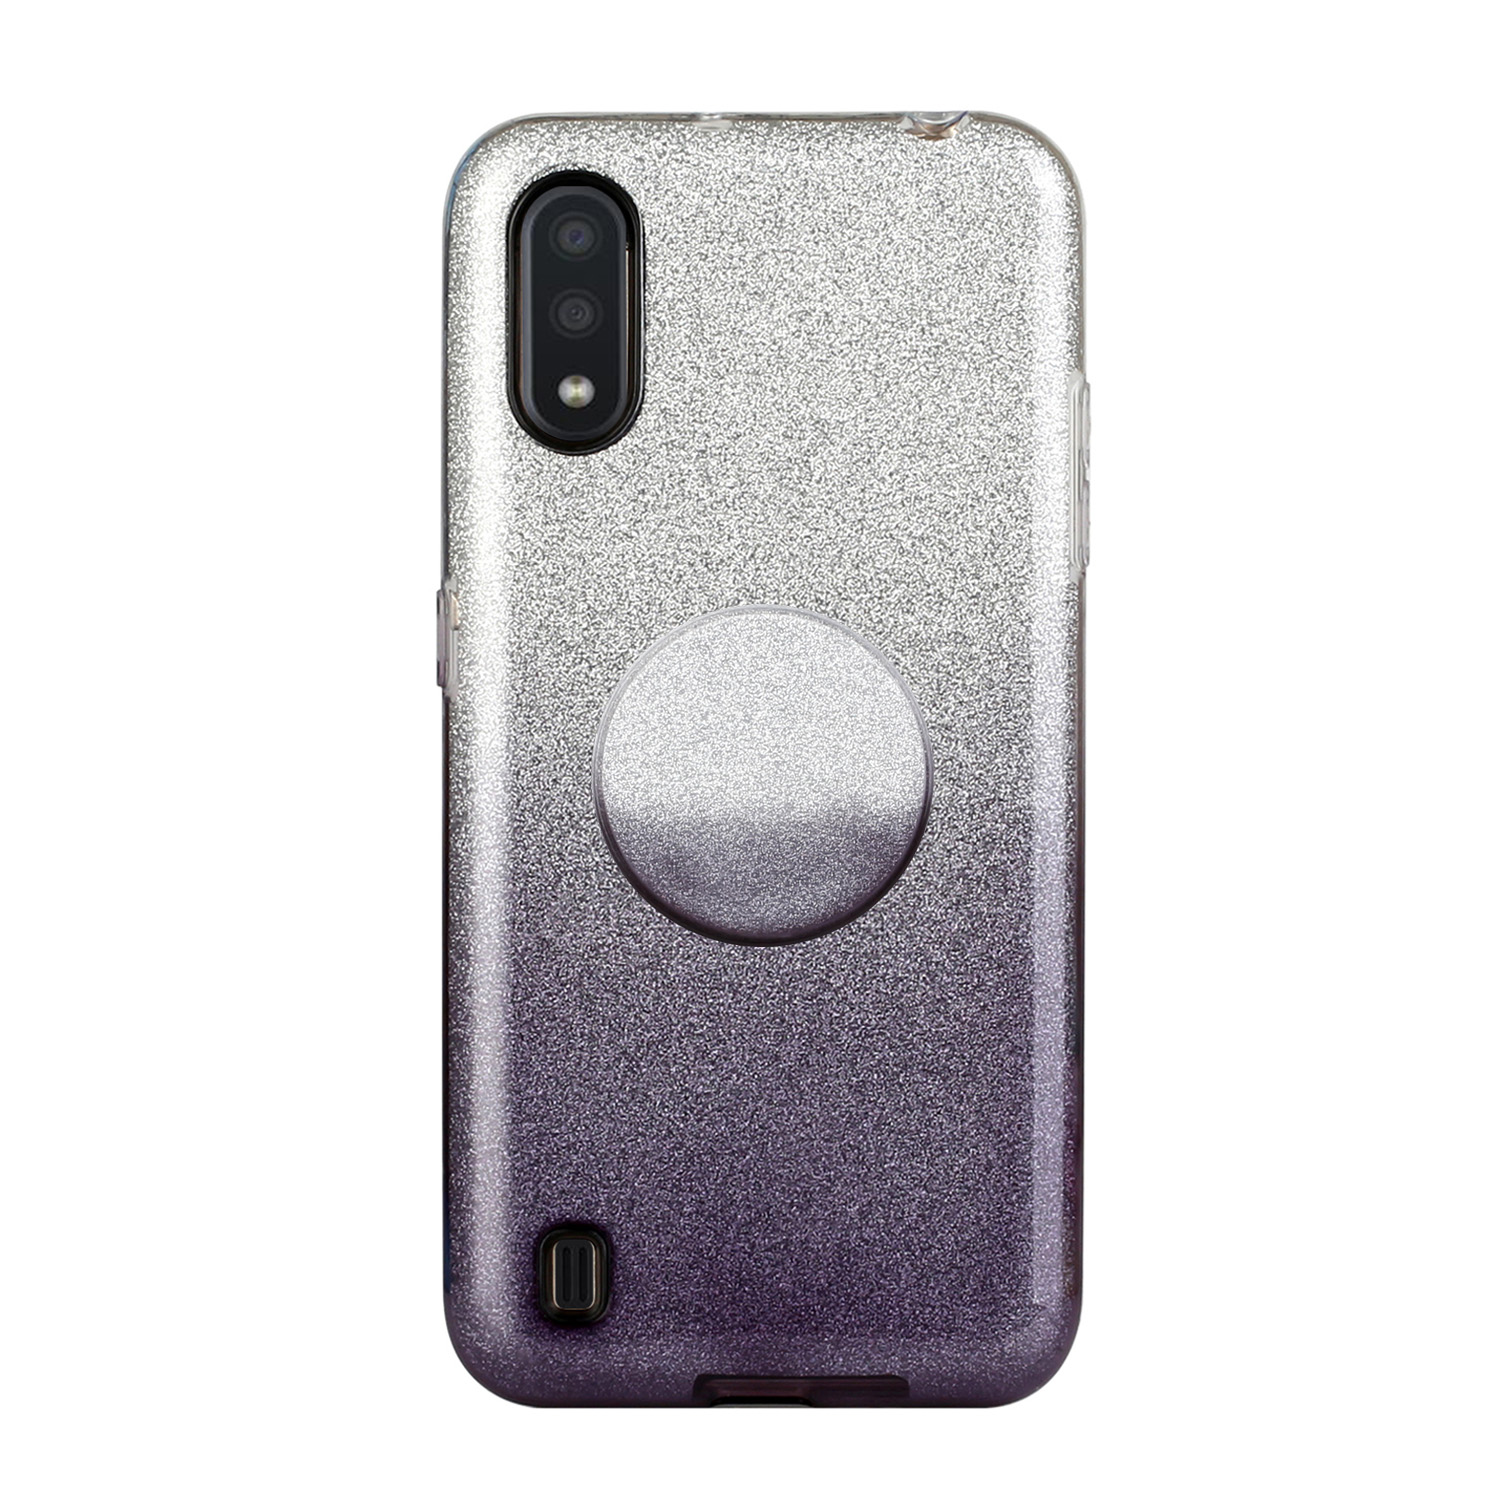 For Samsung A10/A50/A30S/A70/A20S Phone Case Gradient Color Glitter Powder Phone Cover with Airbag Bracket black